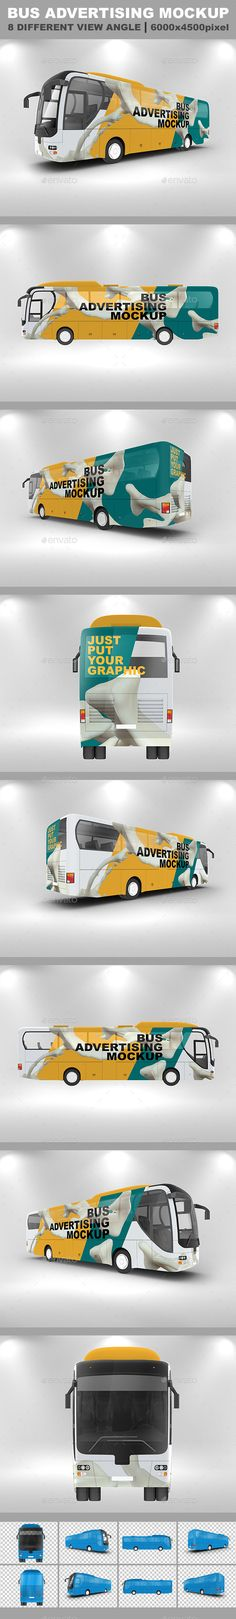 Buy Bus Advertising Mockup by arthinker on GraphicRiver. Good for advertise your logo, branding, banner, etc… Just need few second to apply your image/design on bus with Smar. Wrap Advertising, Advertising Design, Mockup Photoshop, Adobe Photoshop, Vehicle Signage, Business Design, Corporate Design, Indesign Templates, Car Wrap